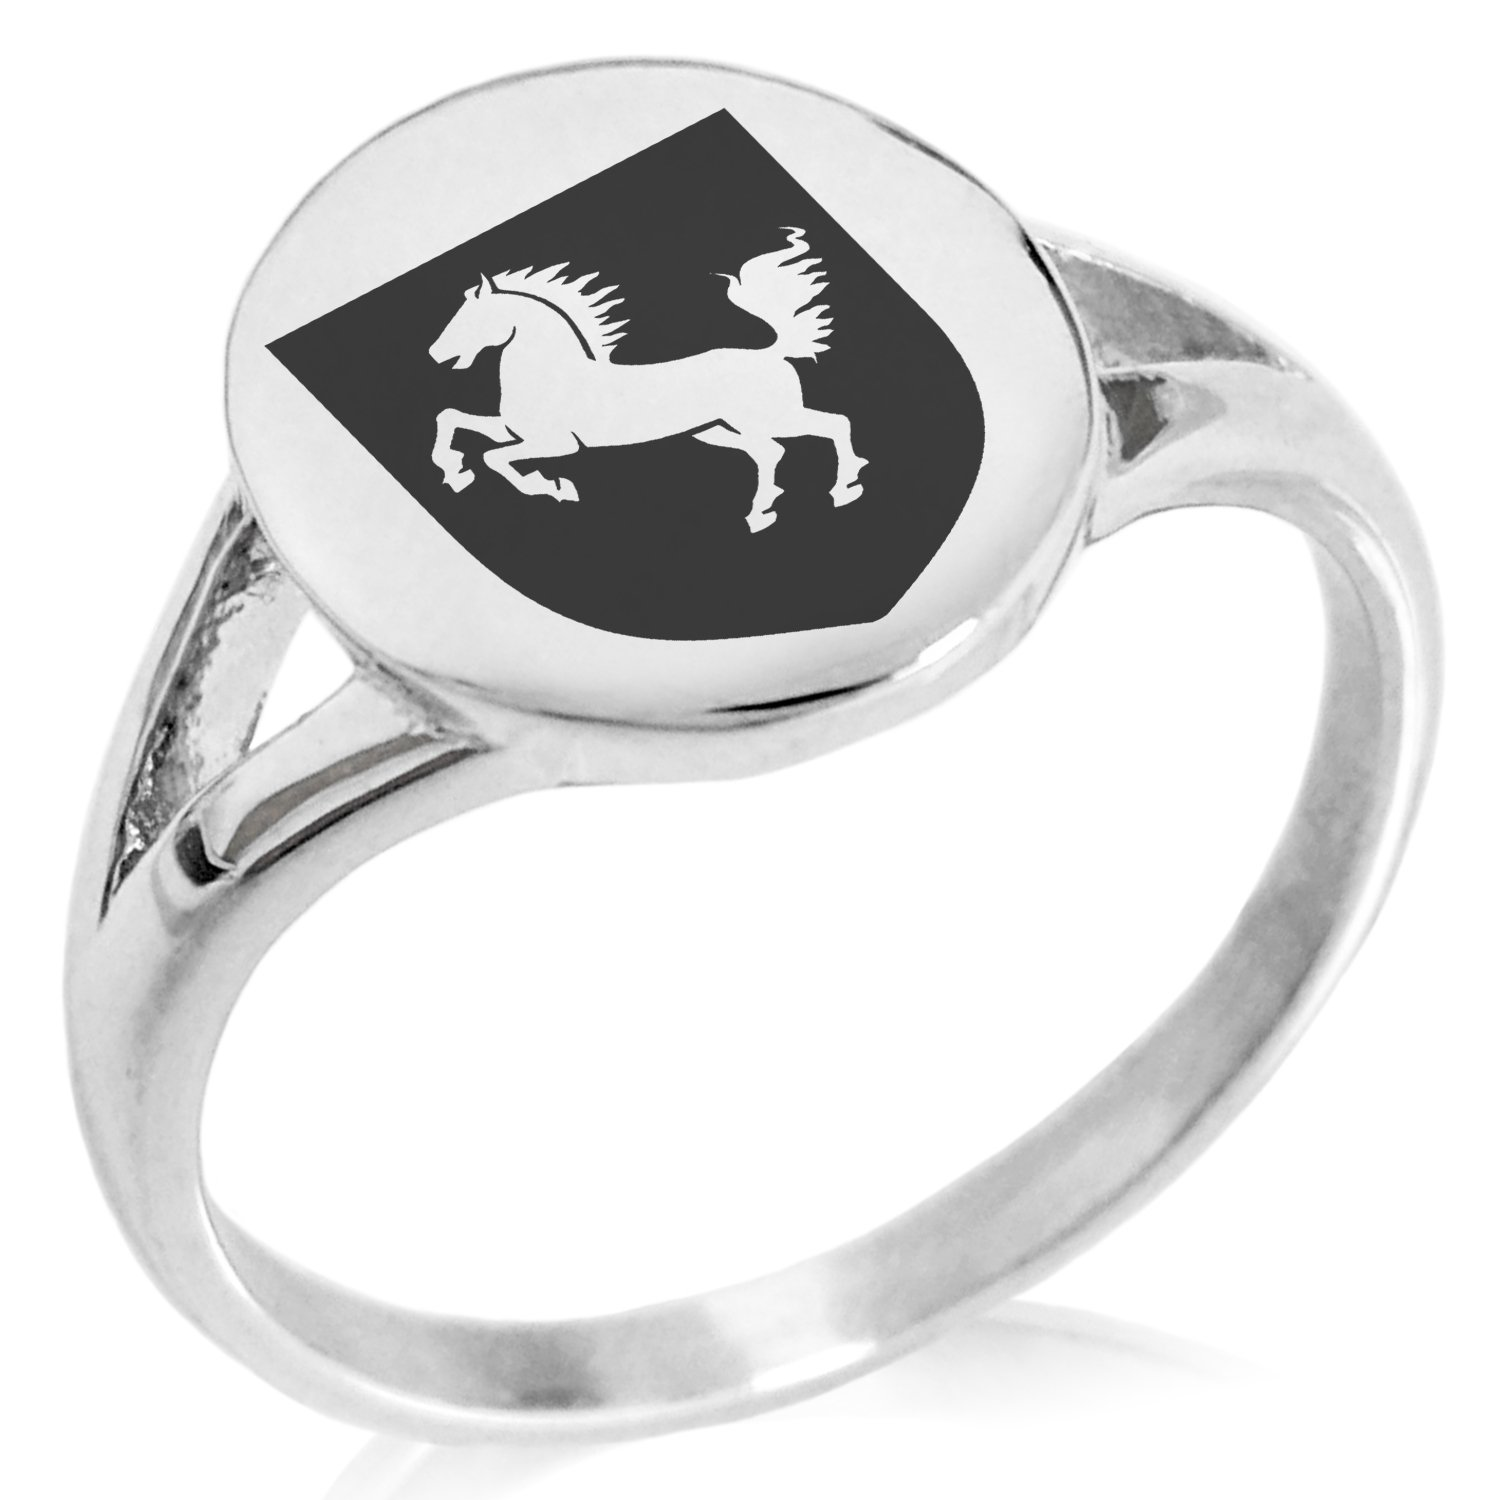 Tioneer Stainless Steel Horse Battle Coat of Arms Shield Symbol Minimalist Oval Top Polished Statement Ring, Size 7